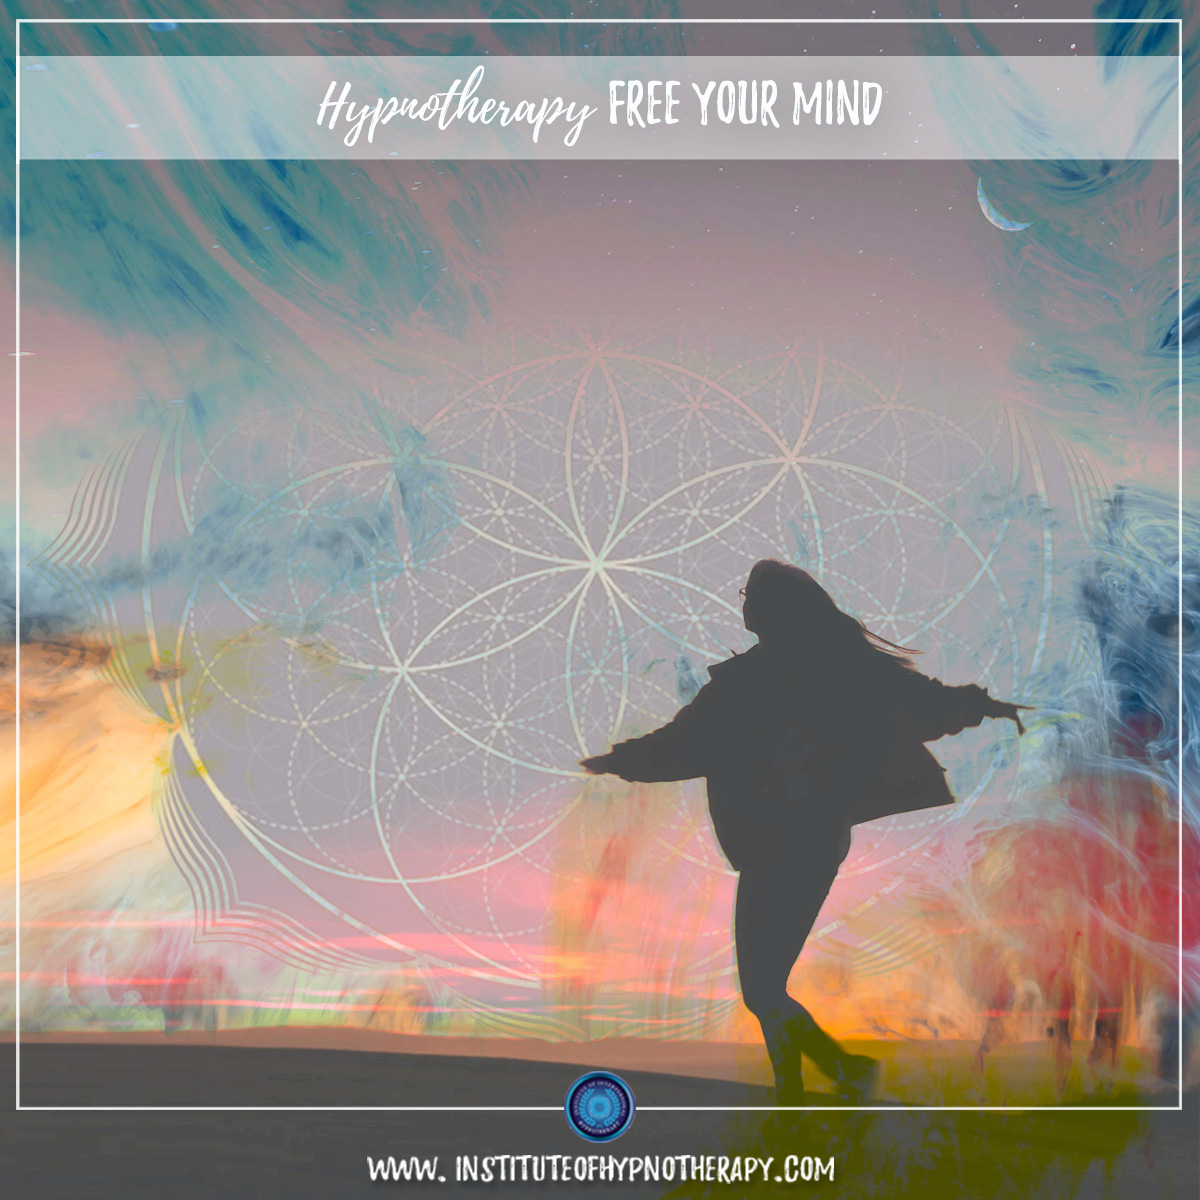 Hypnotherapy And Freeing Your Mind